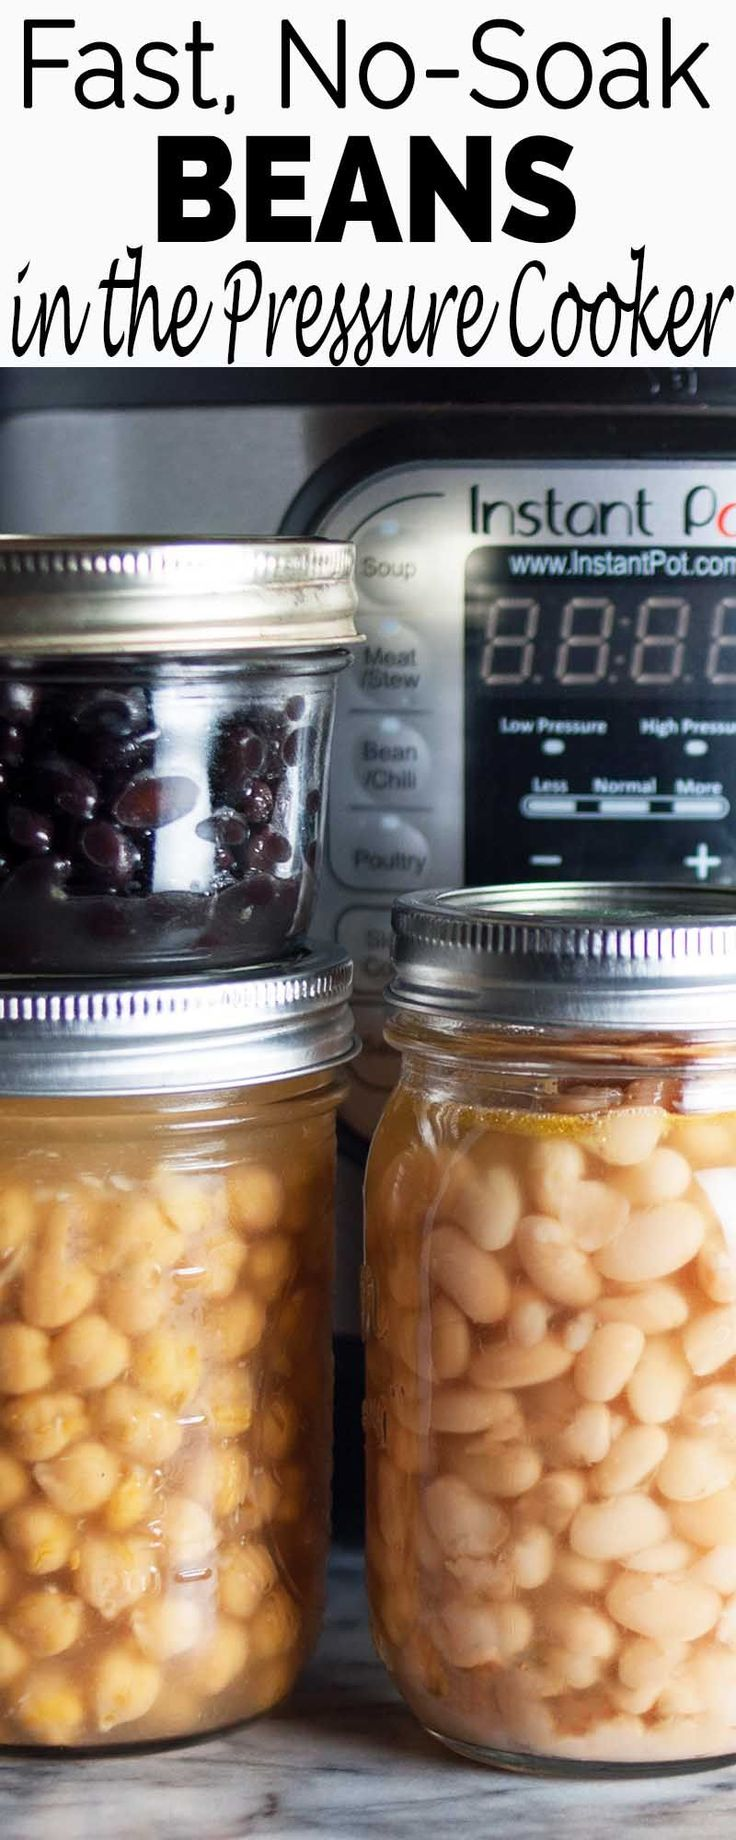 No need to soak your beans! You can make a fresh pot of beans in the pressure cooker in about an hour.